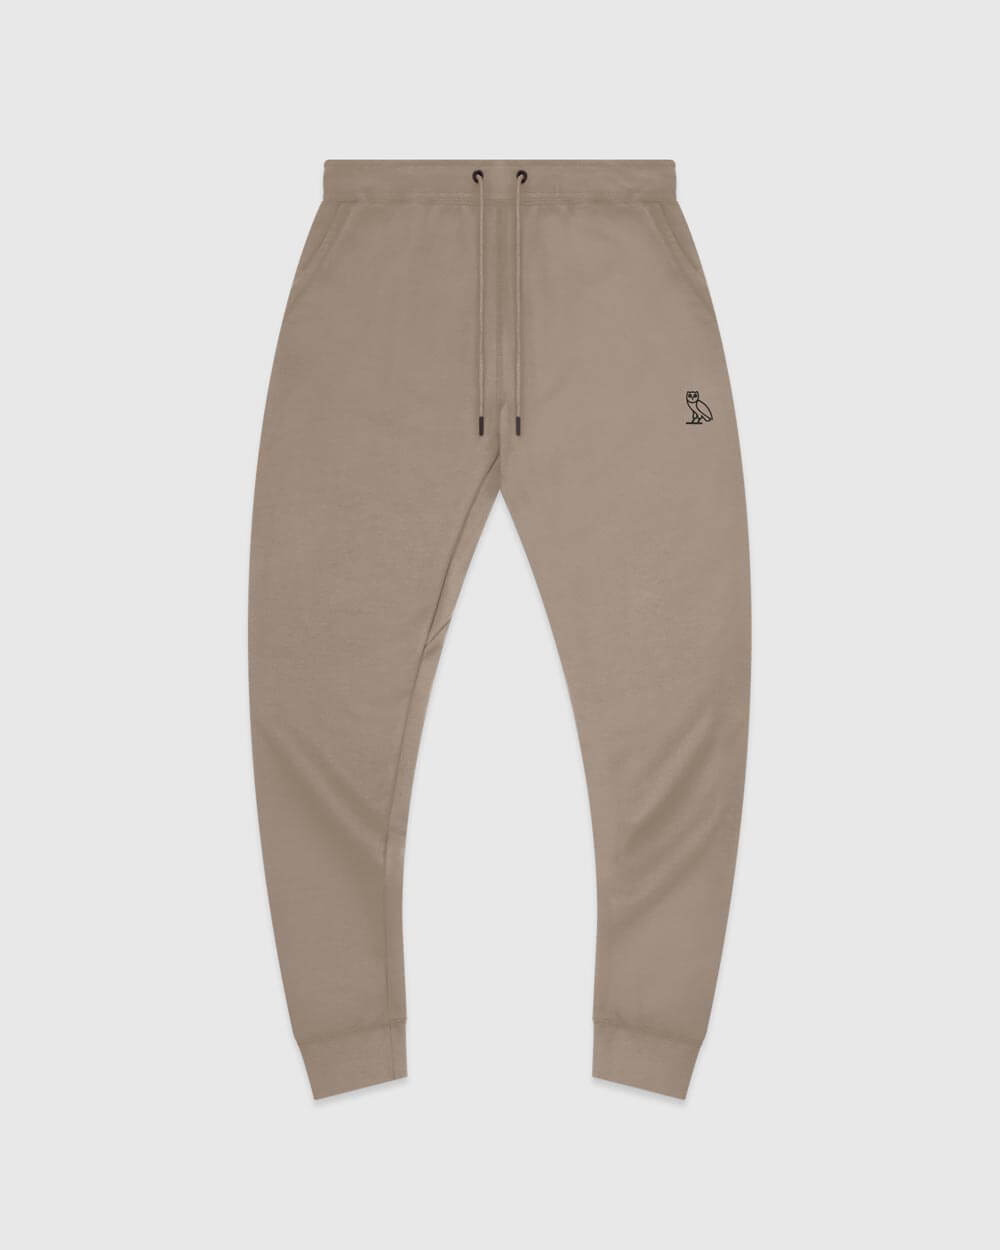 MID-WEIGHT FRENCH TERRY SWEATPANT -  WARM GREY